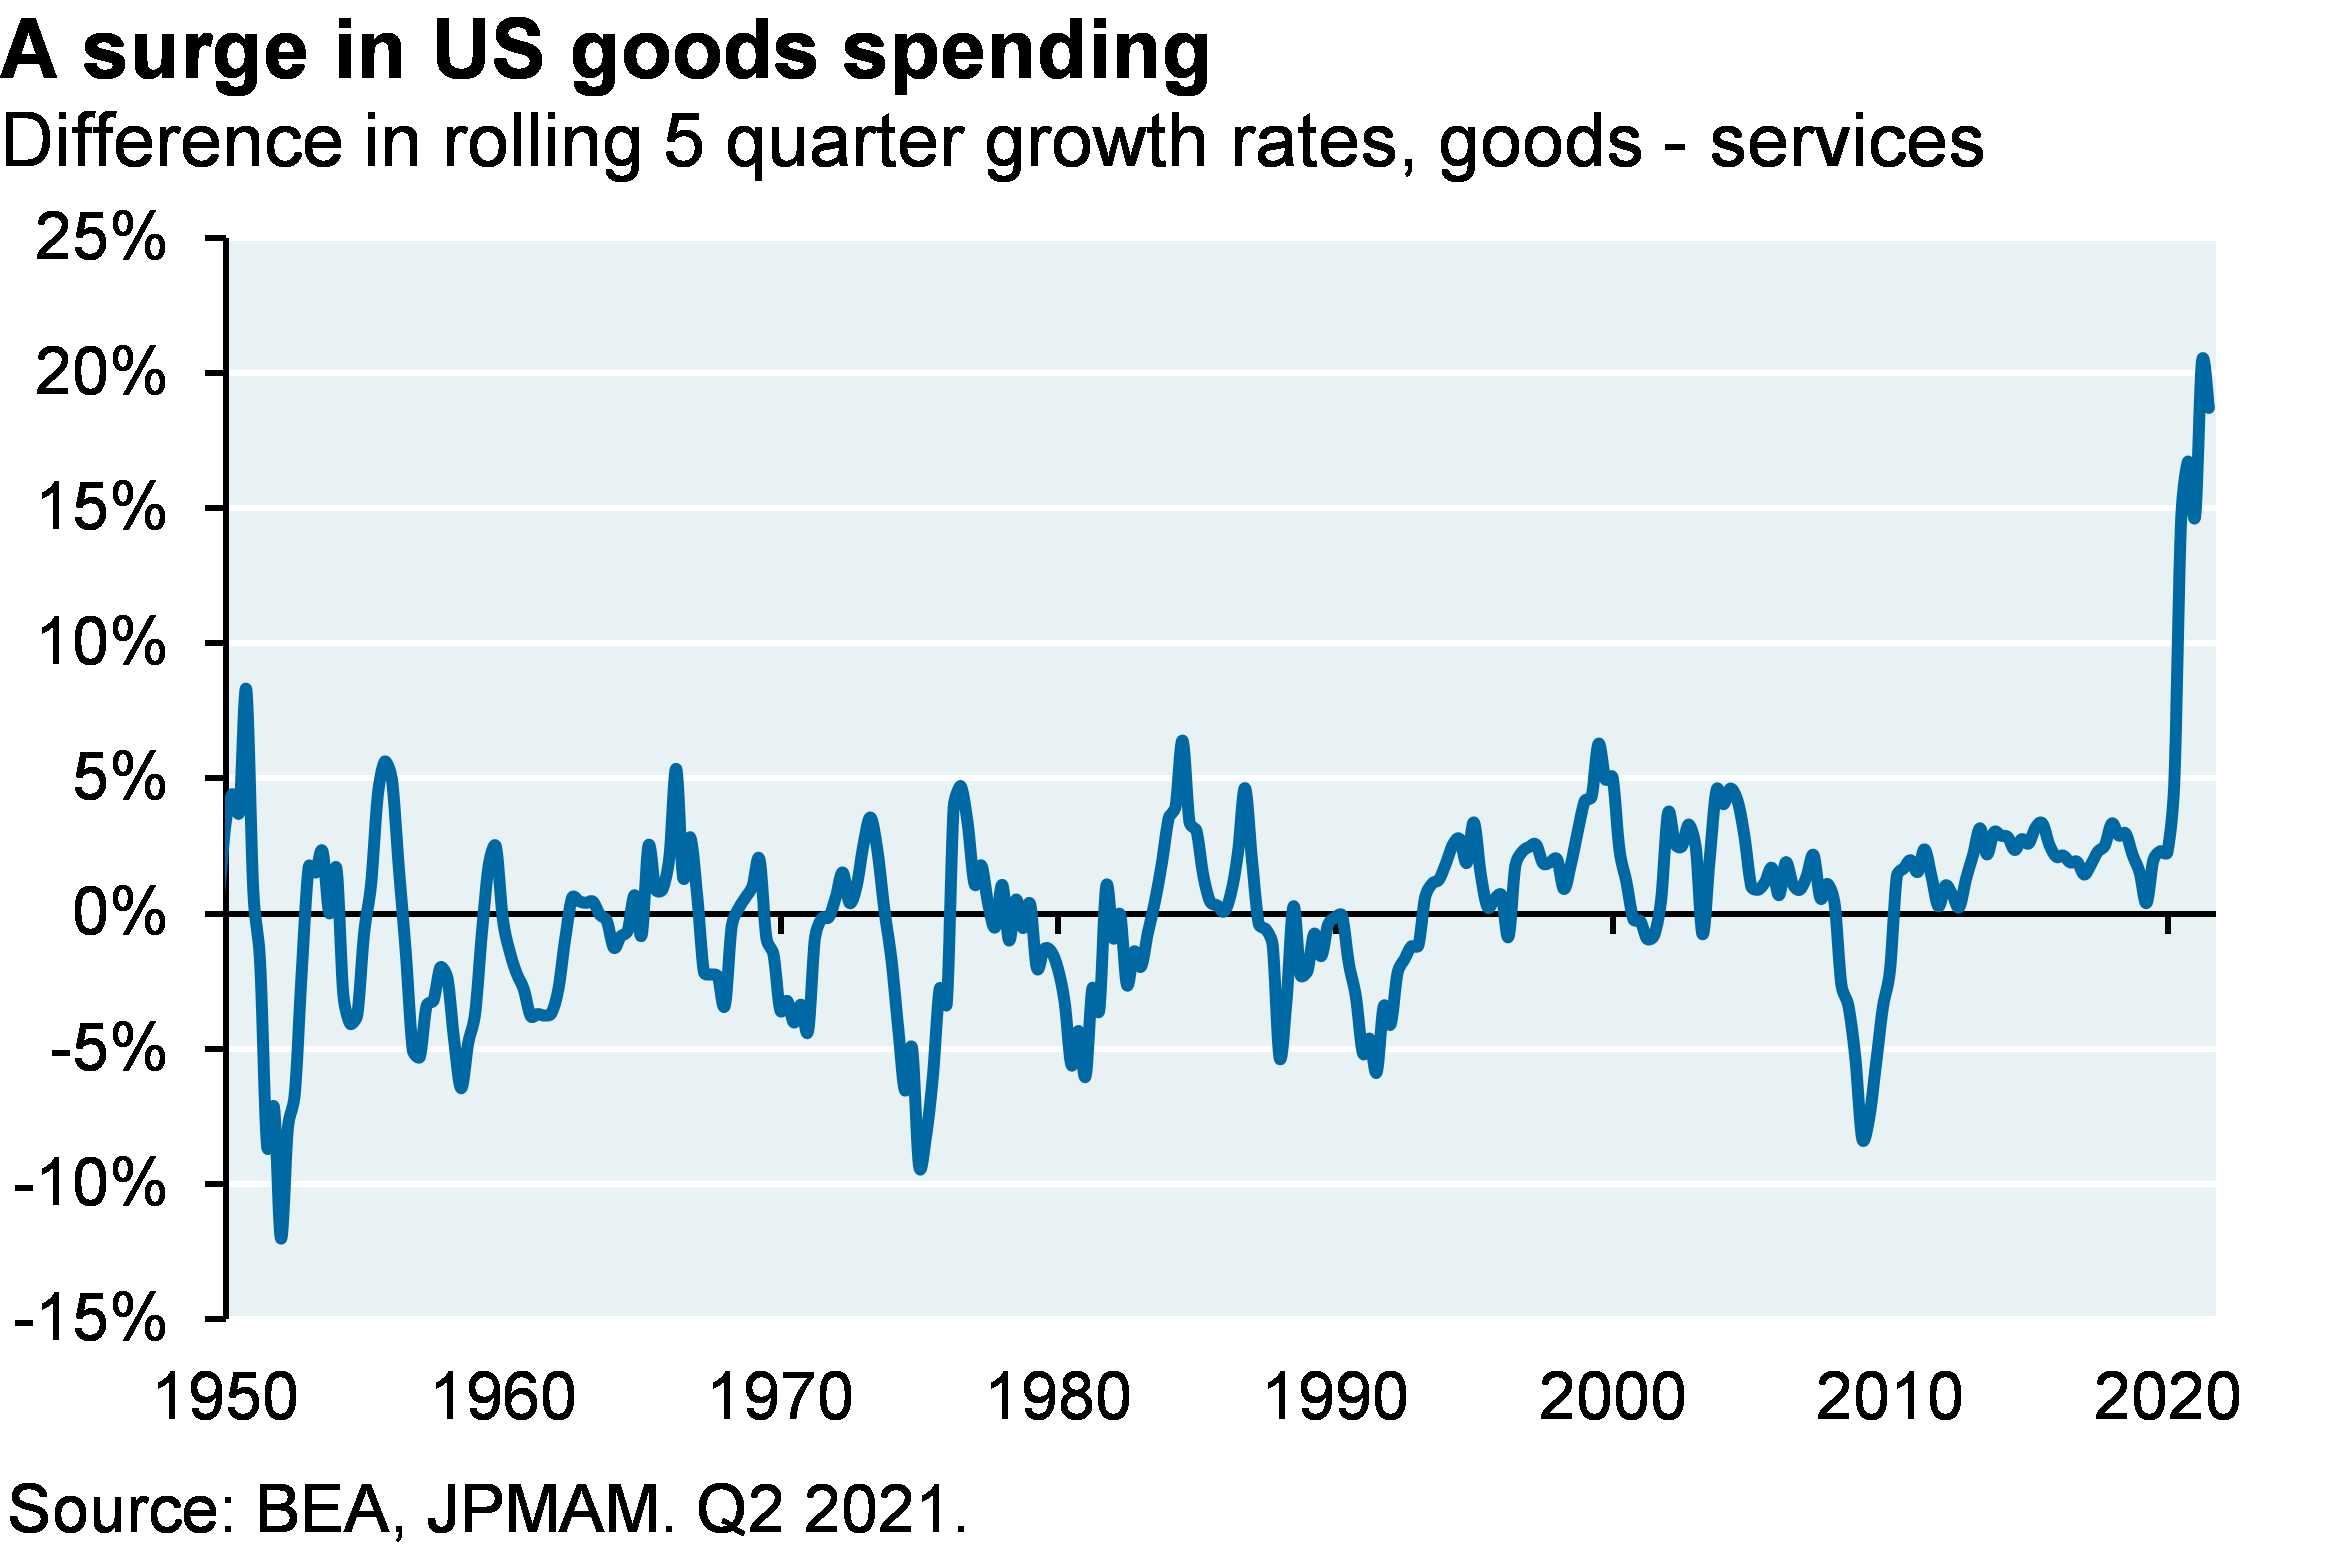 Line chart shows the difference in rolling 5 quarter growth rates between goods and services. The dispersion in US goods spending vs services in the last few quarters is at the highest level on record.